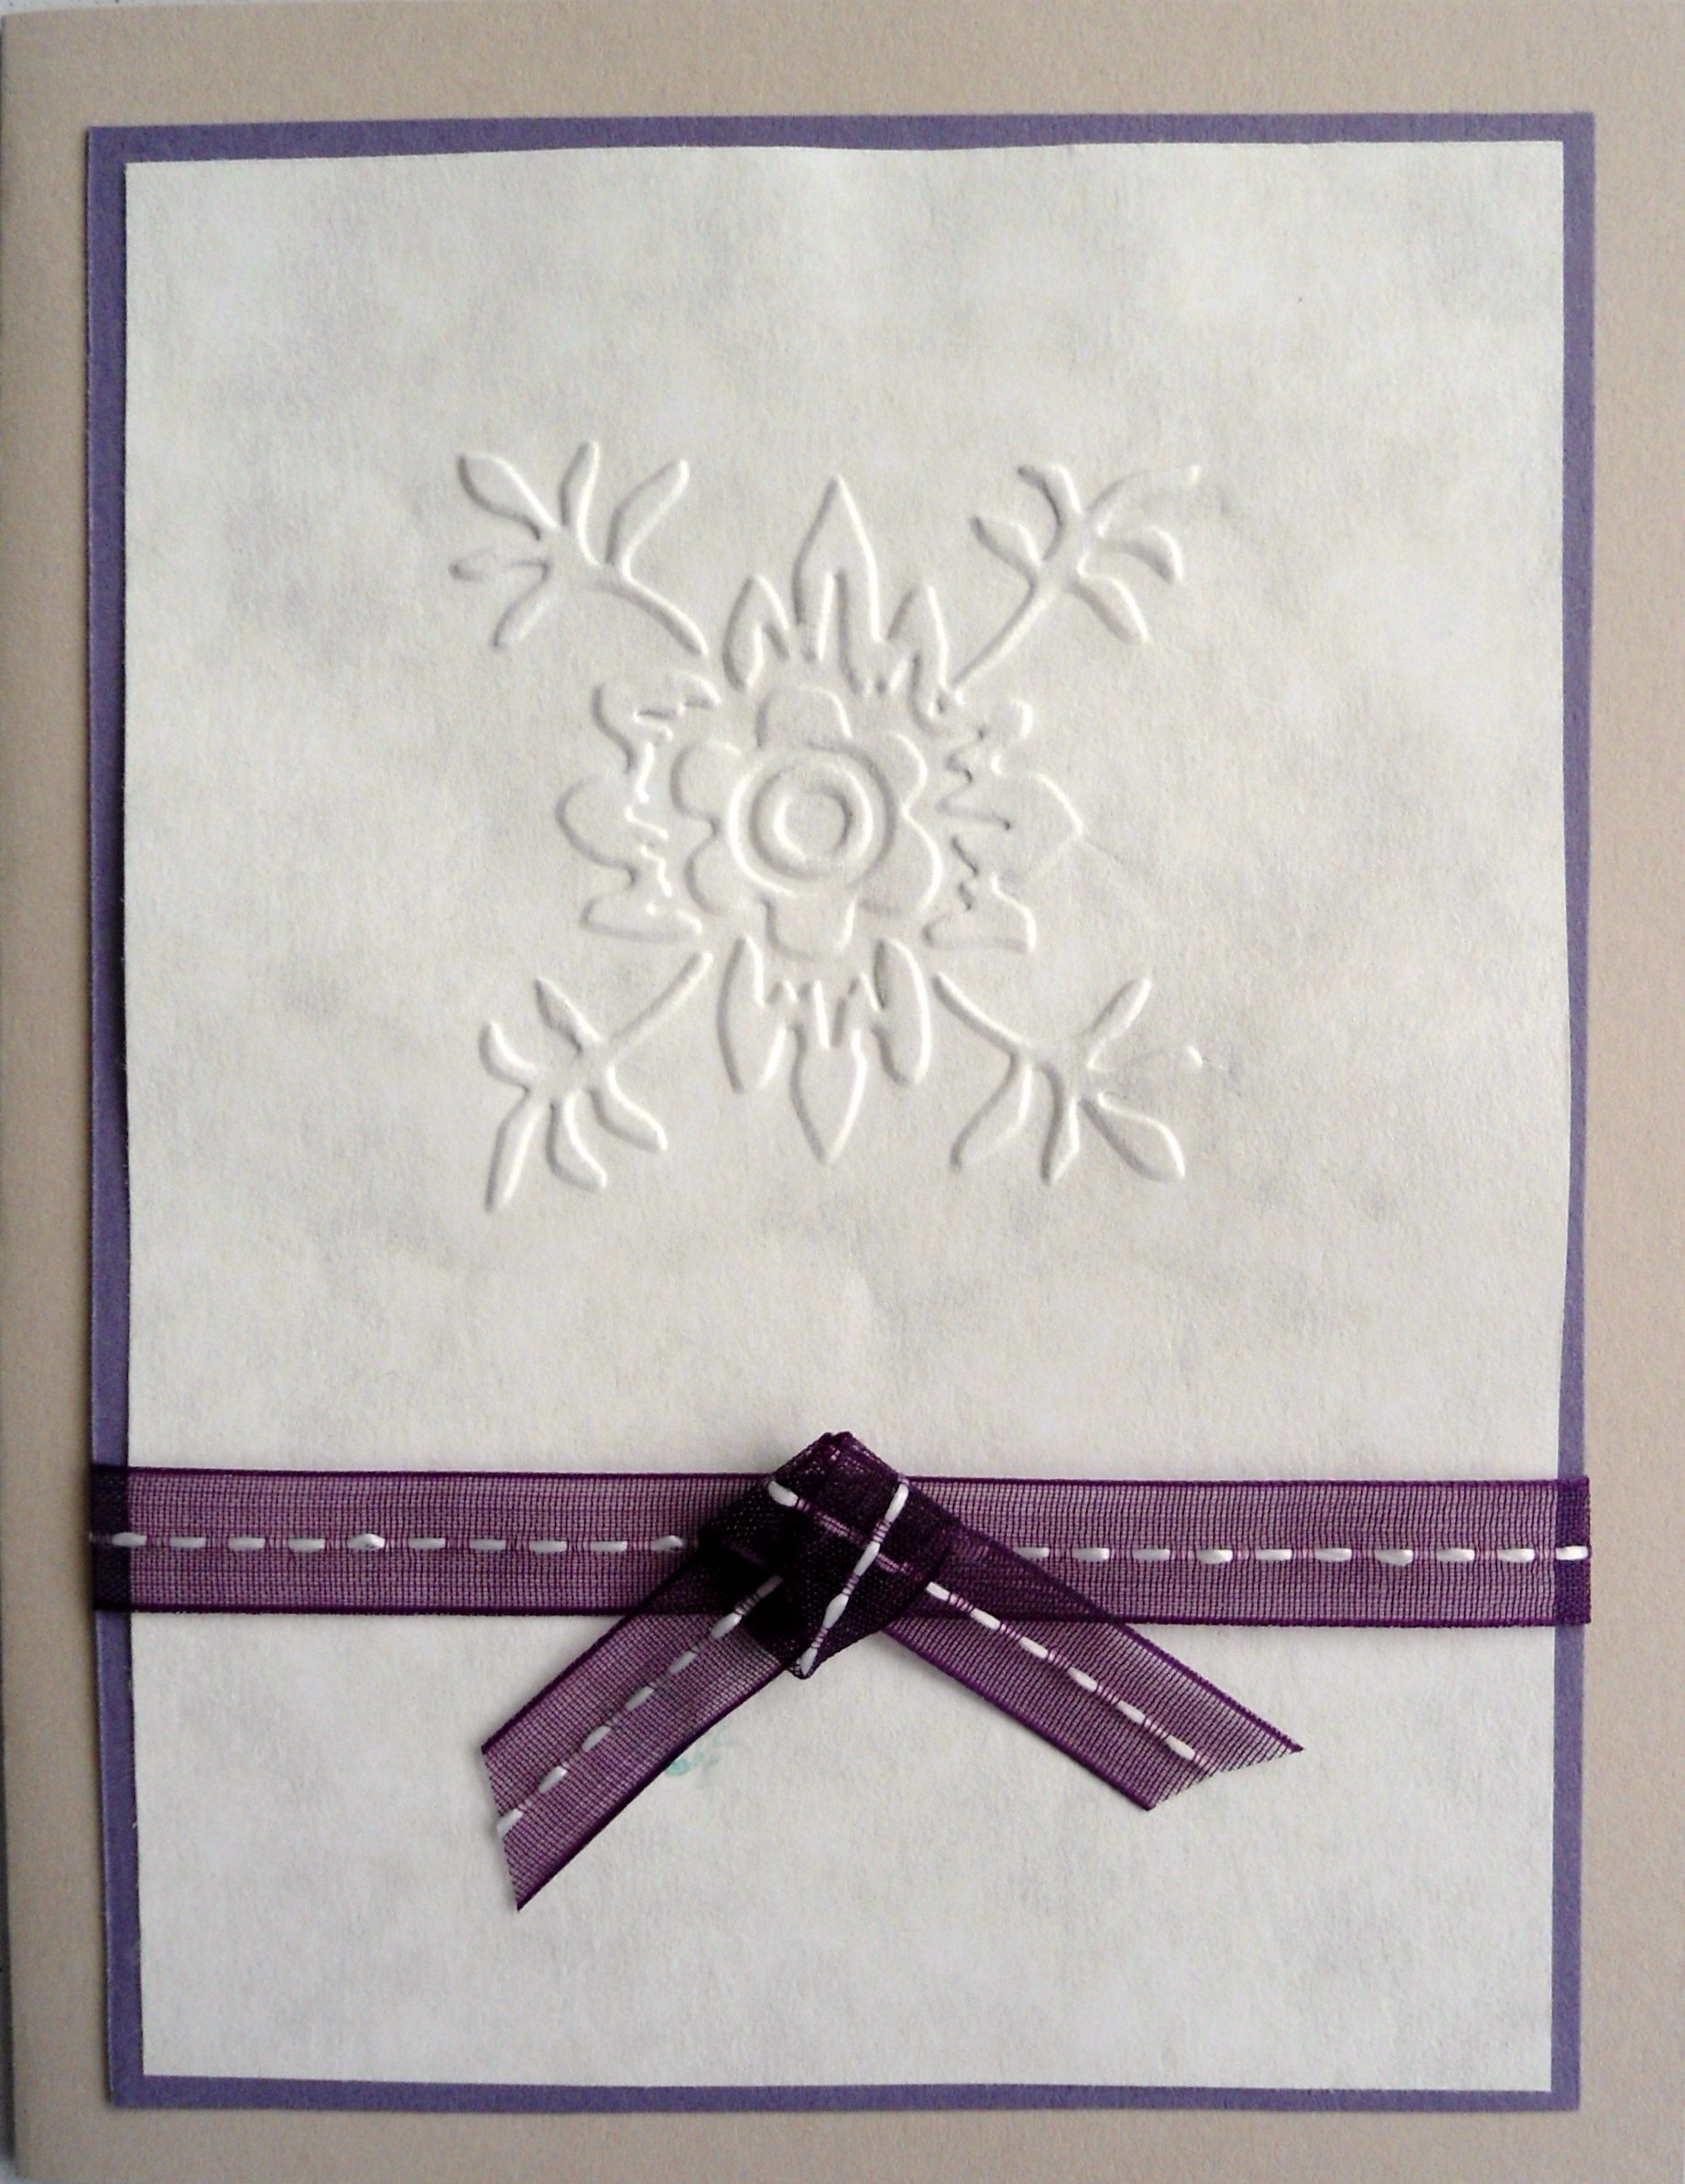 I embossed the image on a piece of paper, backed it with lavender and wrapped a purple ribbon around it; affixed it to the card: done...